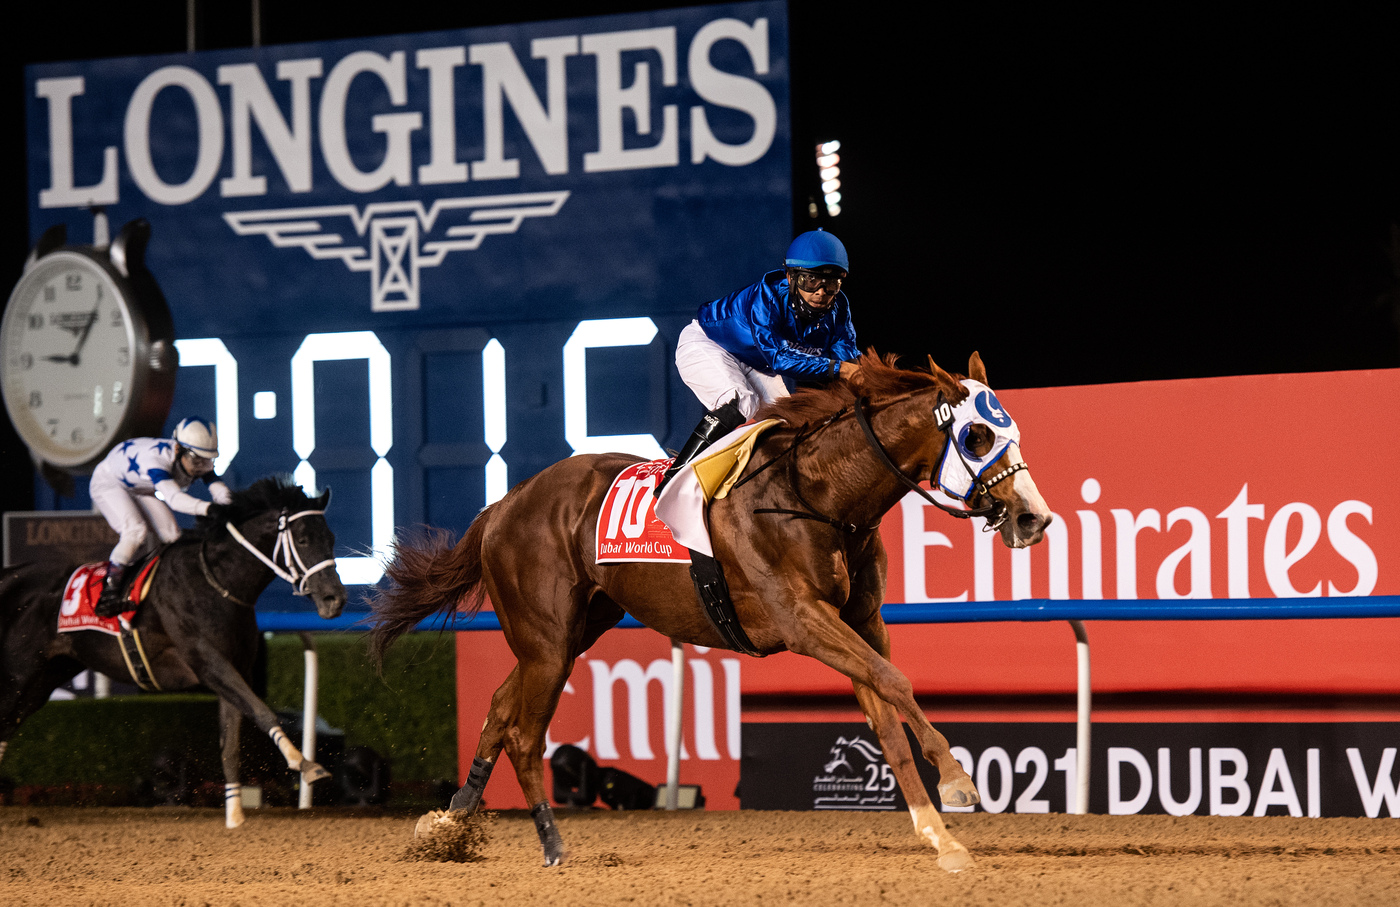 Longines Flat Racing Event: Longines times the victory of Mystic Guide in the 25th Dubai World Cup 2